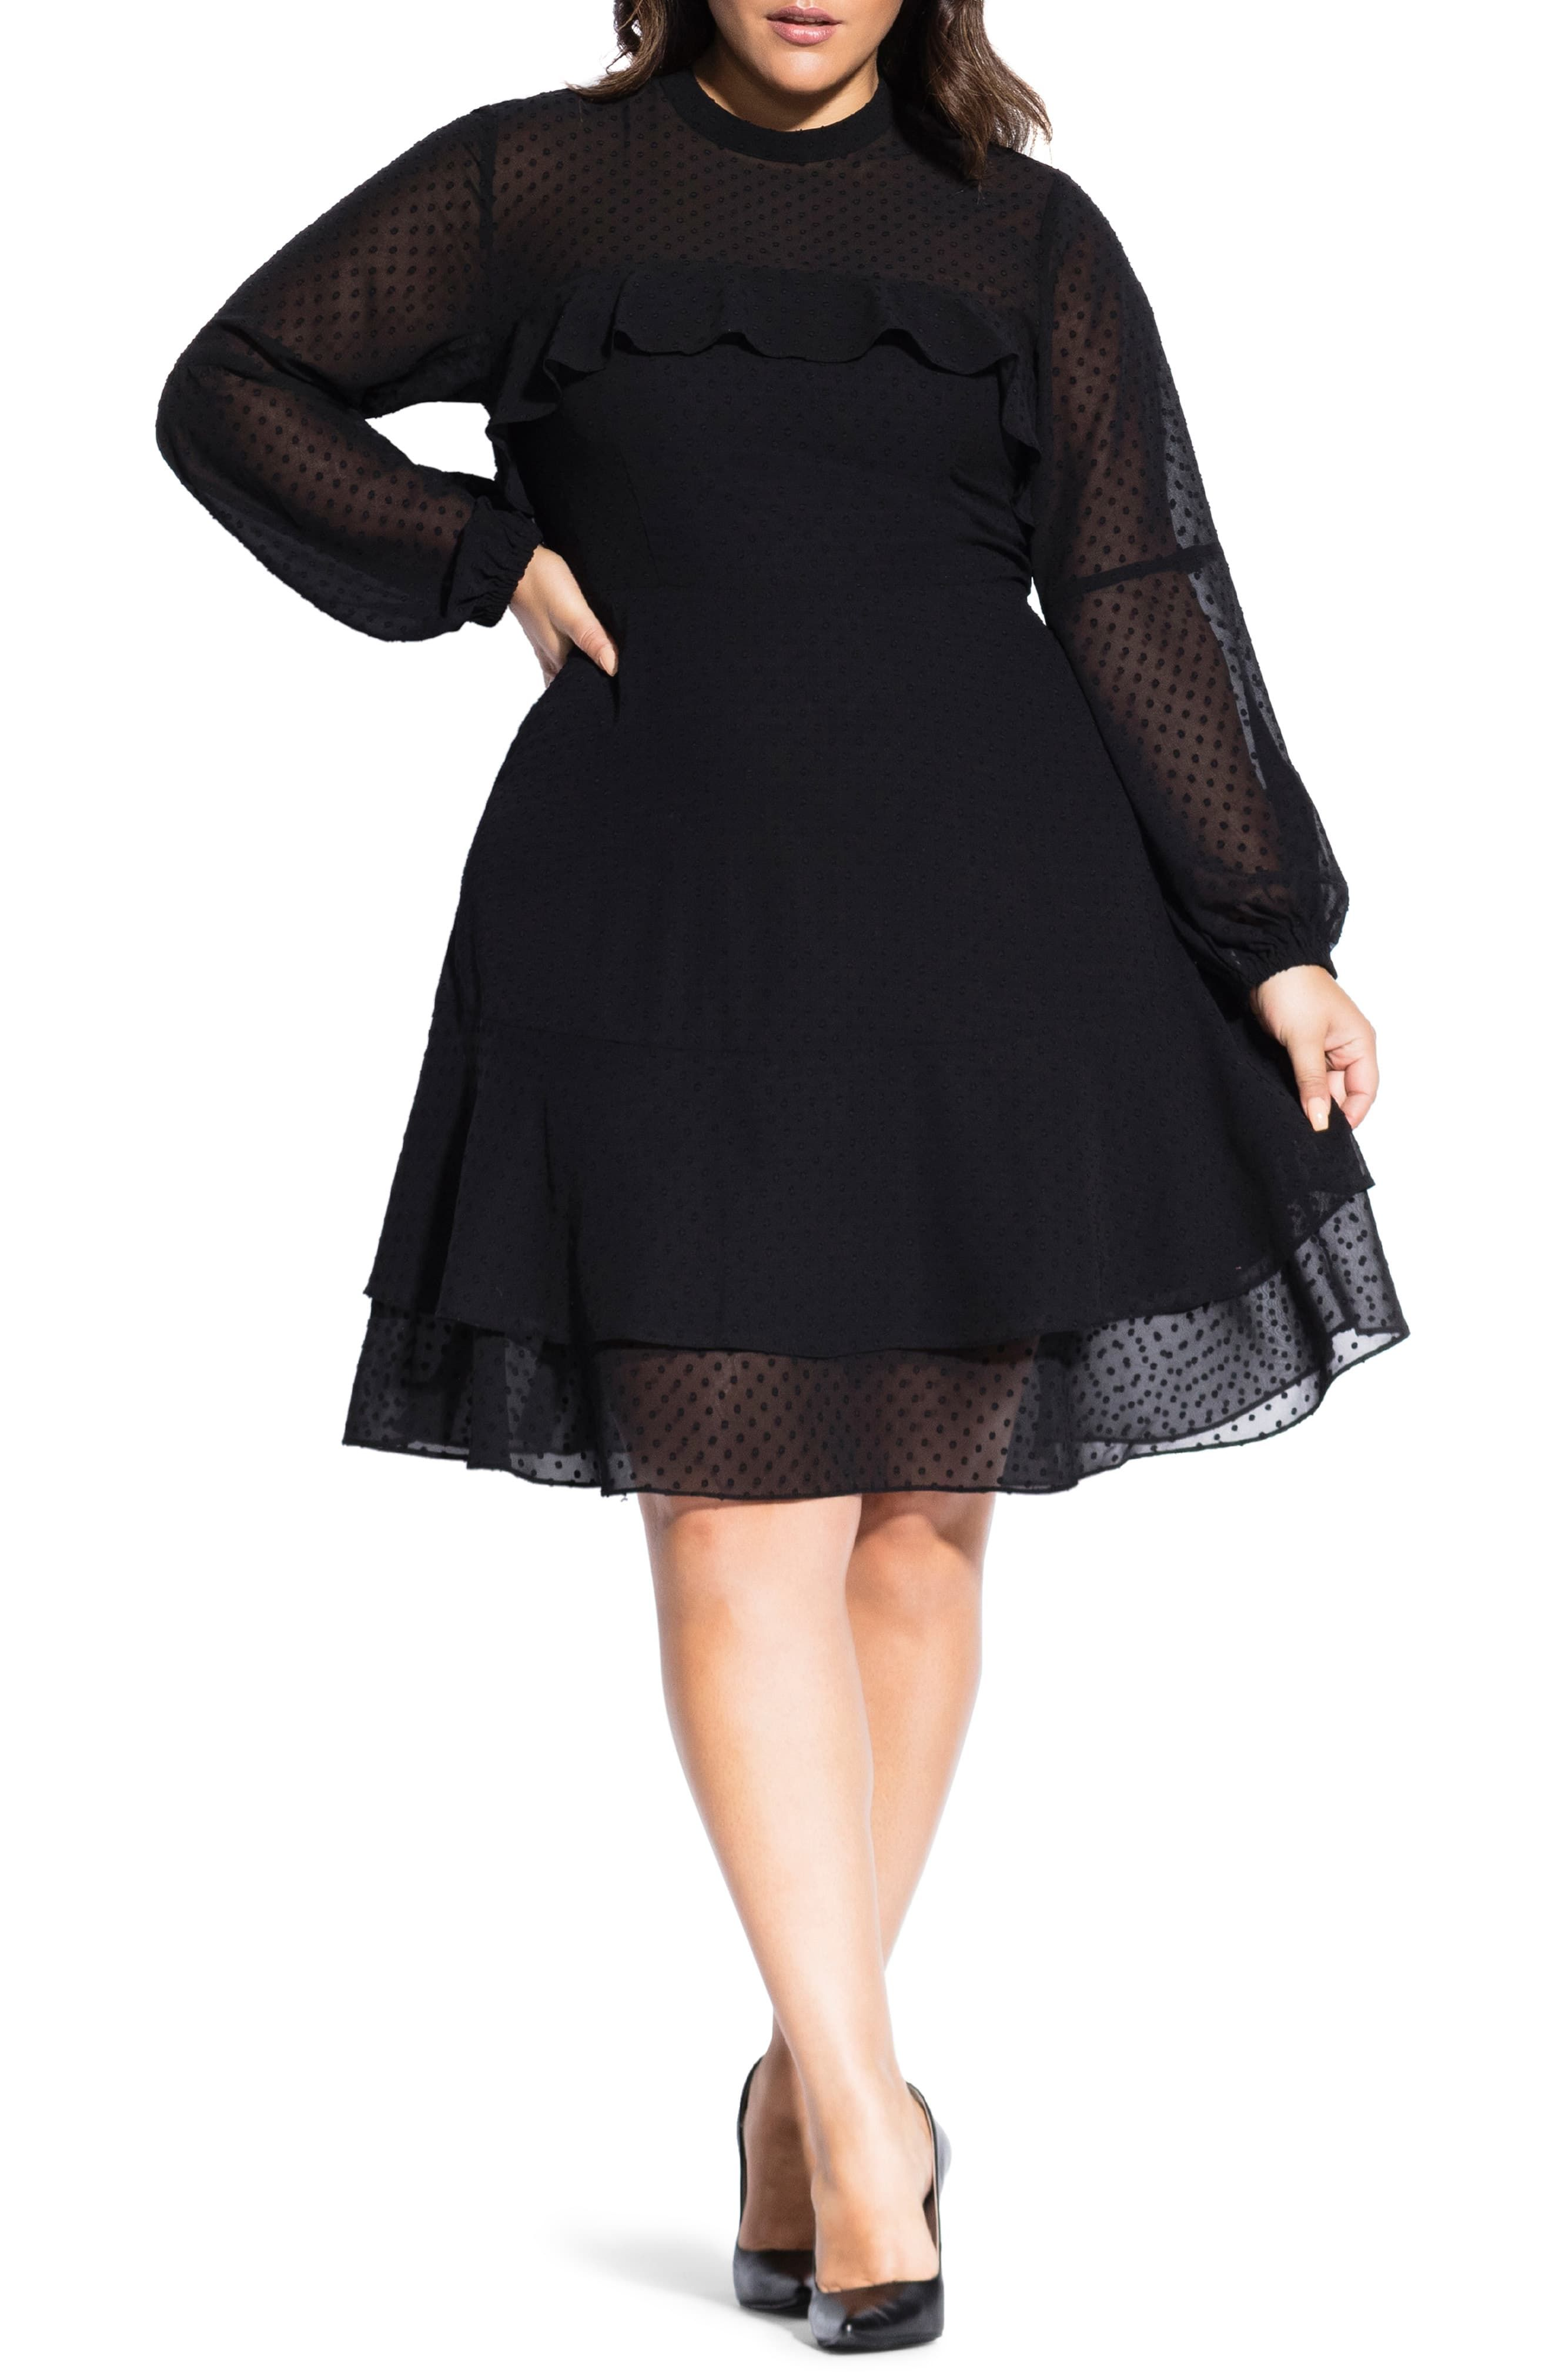 20+ Plus size fit and flare dress ideas